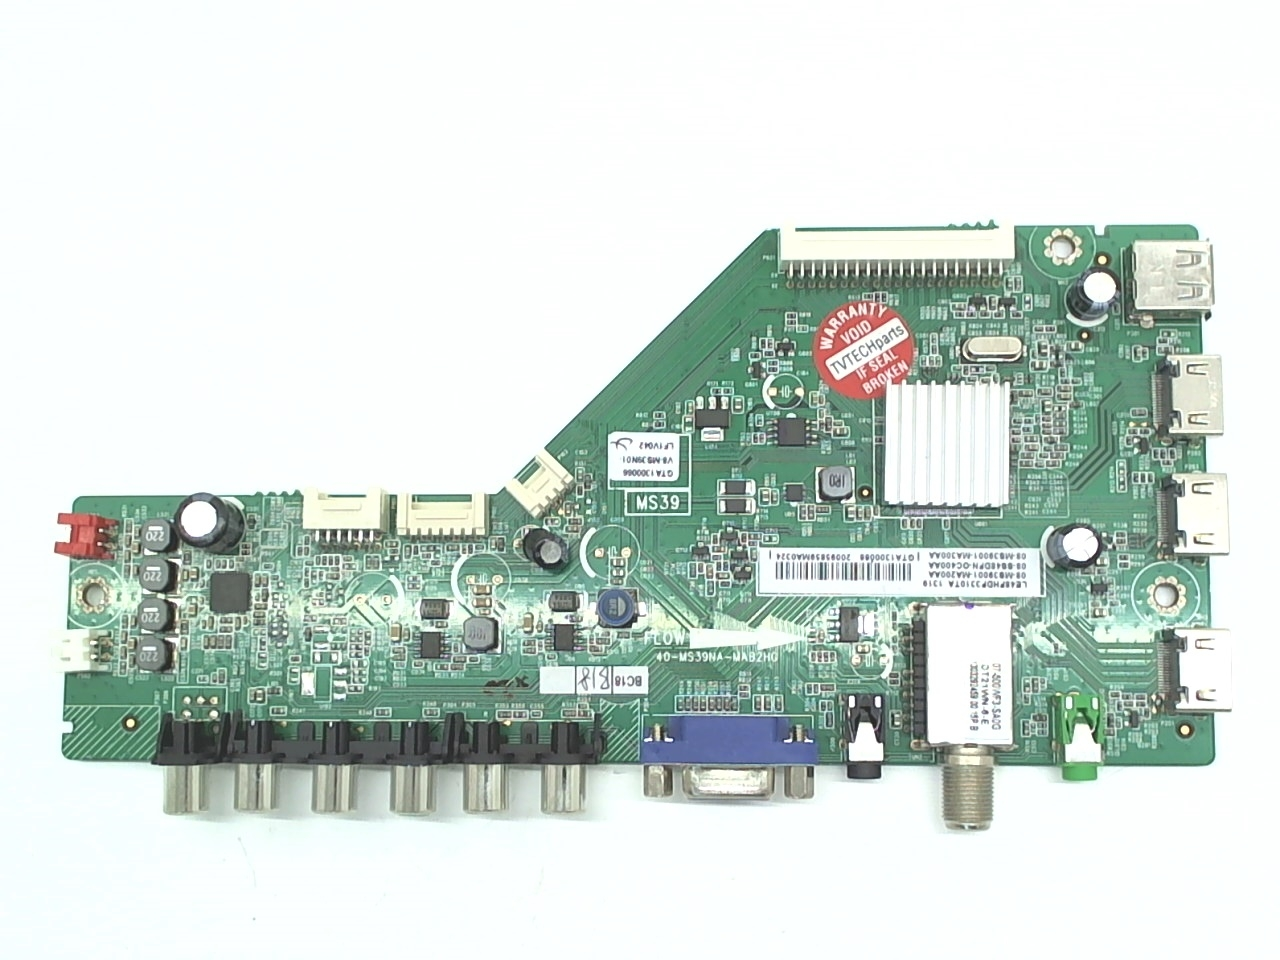 TCL TV Model LE48FHDF3310 Main Board Part Number 08-SS48DFN-OC400A